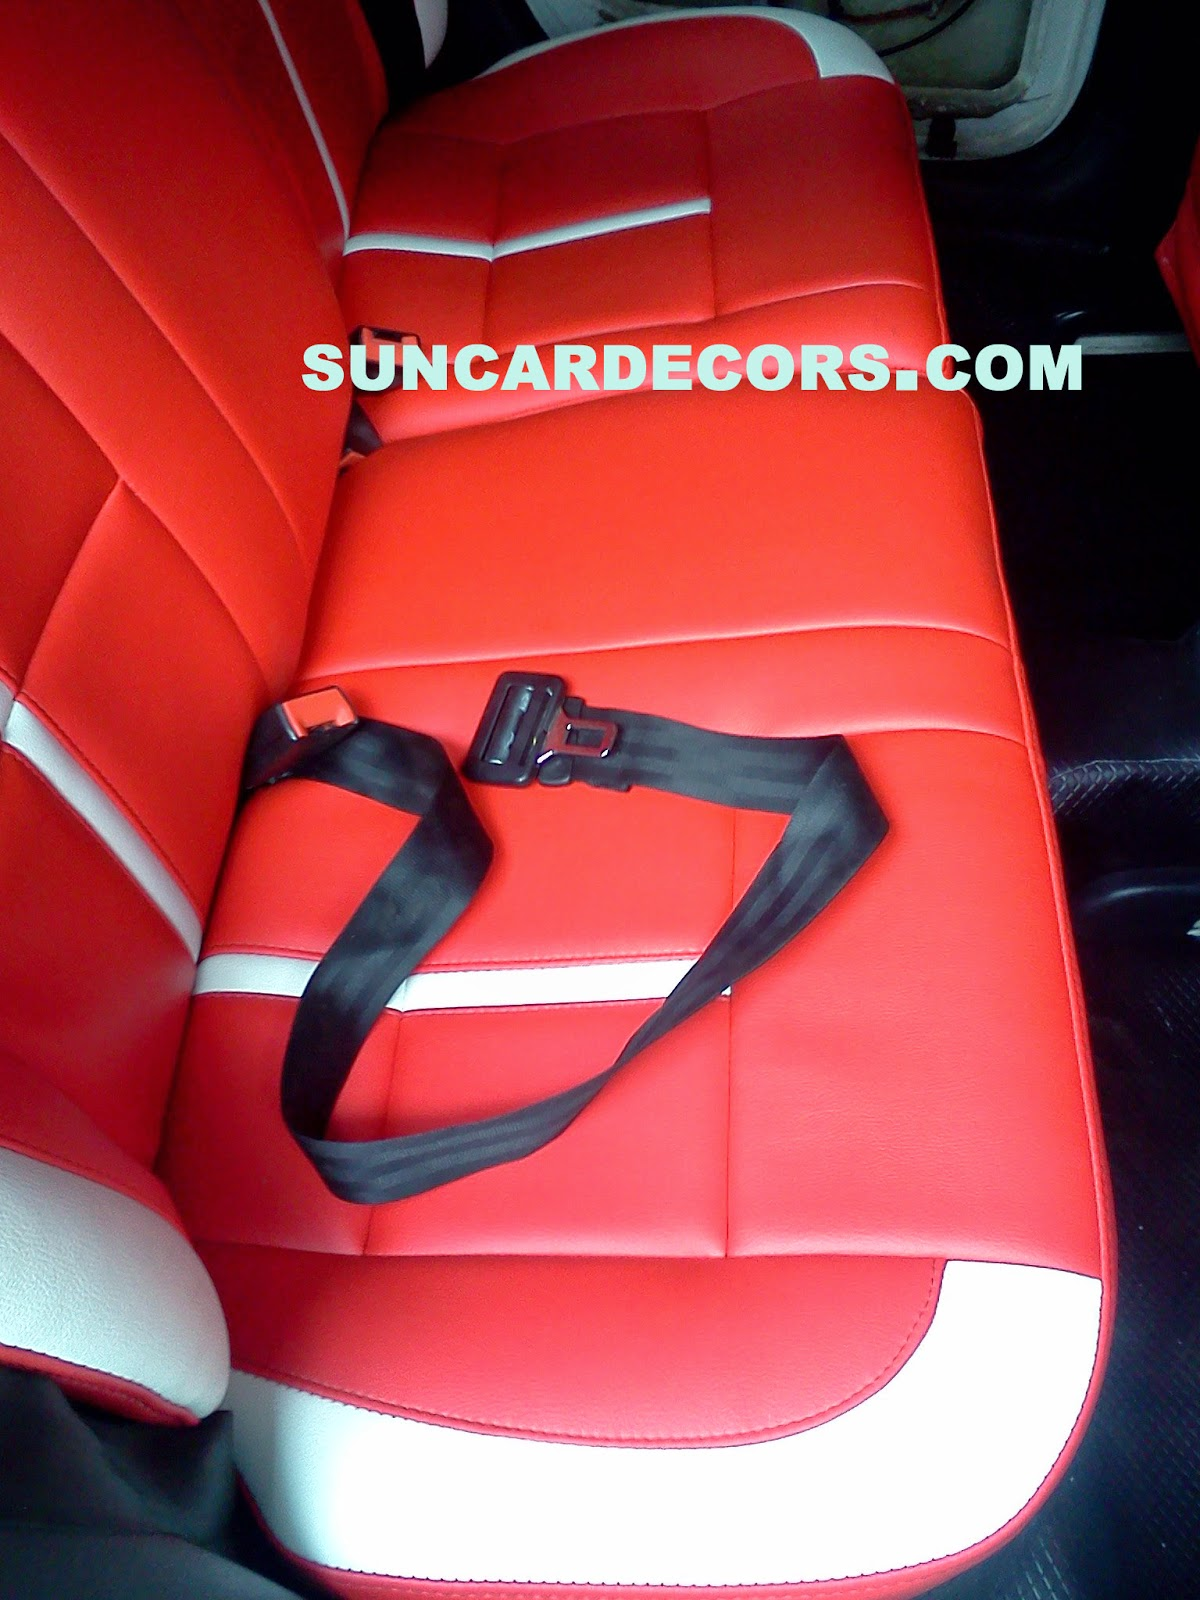 Stanley Car Seat Covers Online